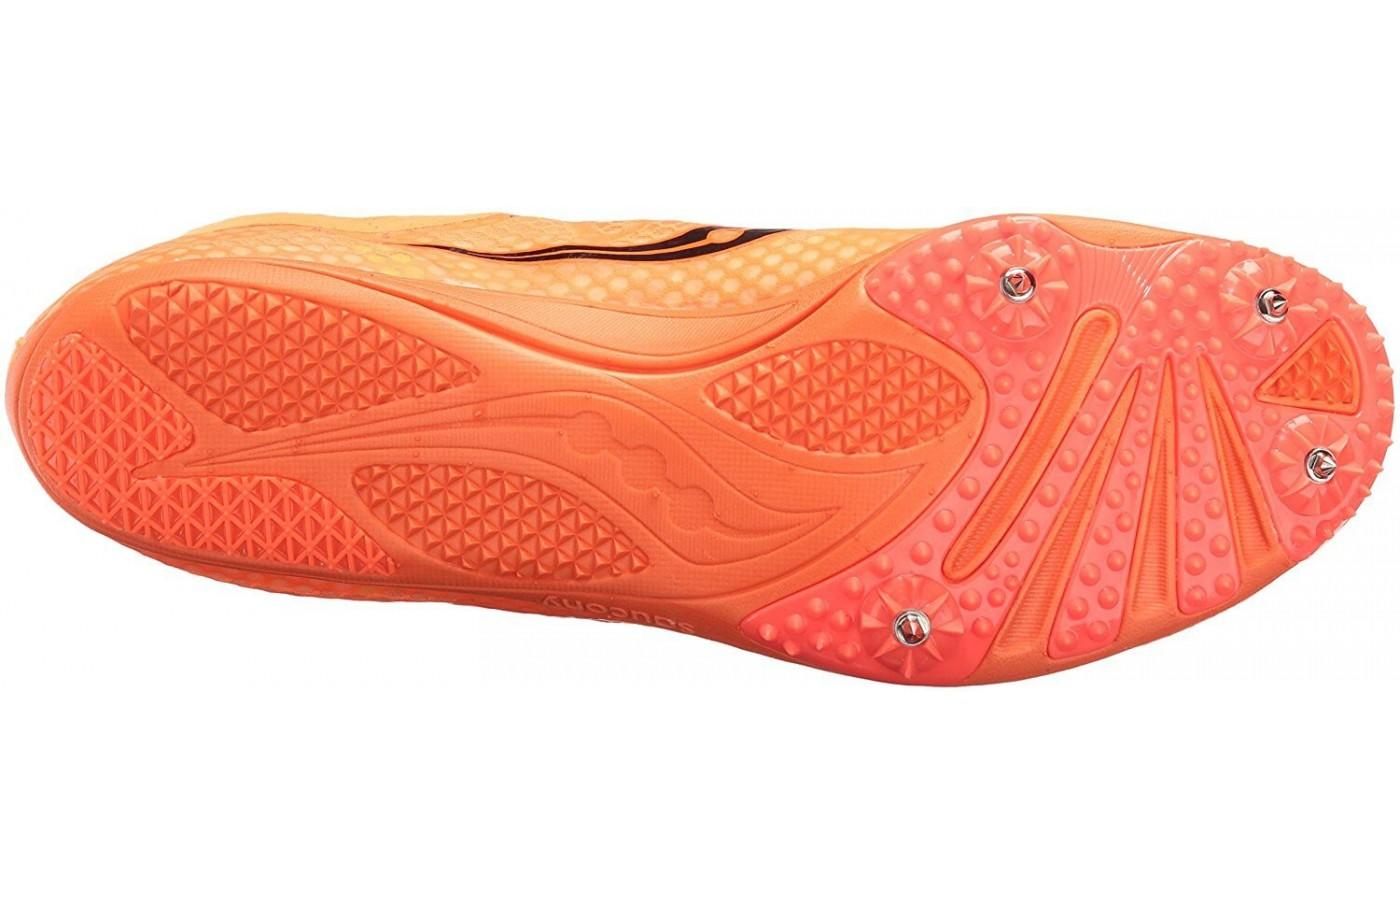 the Saucony Endorphin Pebax 4 spike base plate